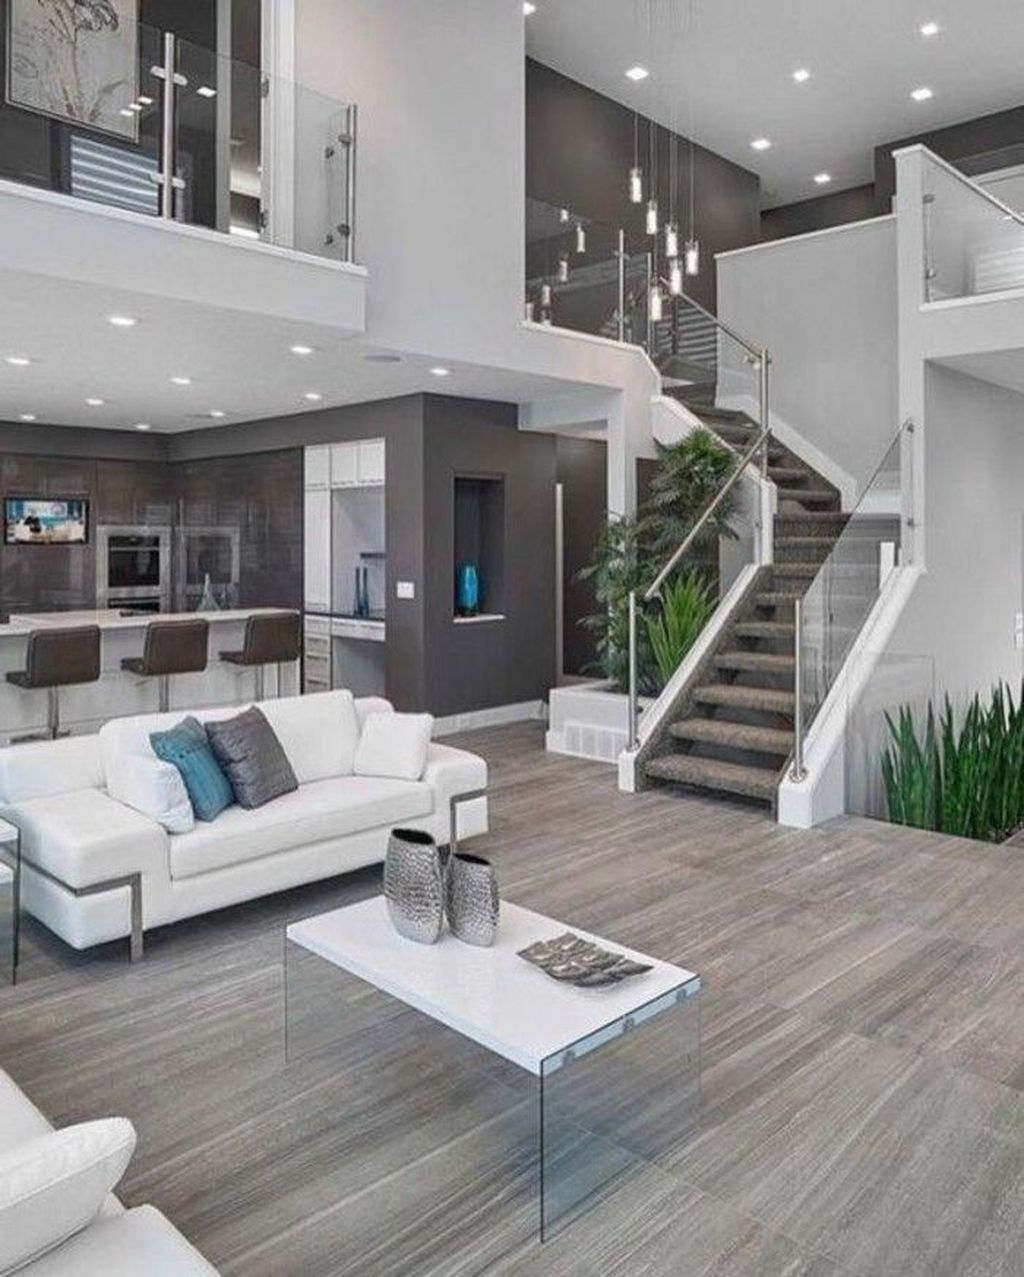 40 Awesome Home Interiors Design Ideas To Make Your ...